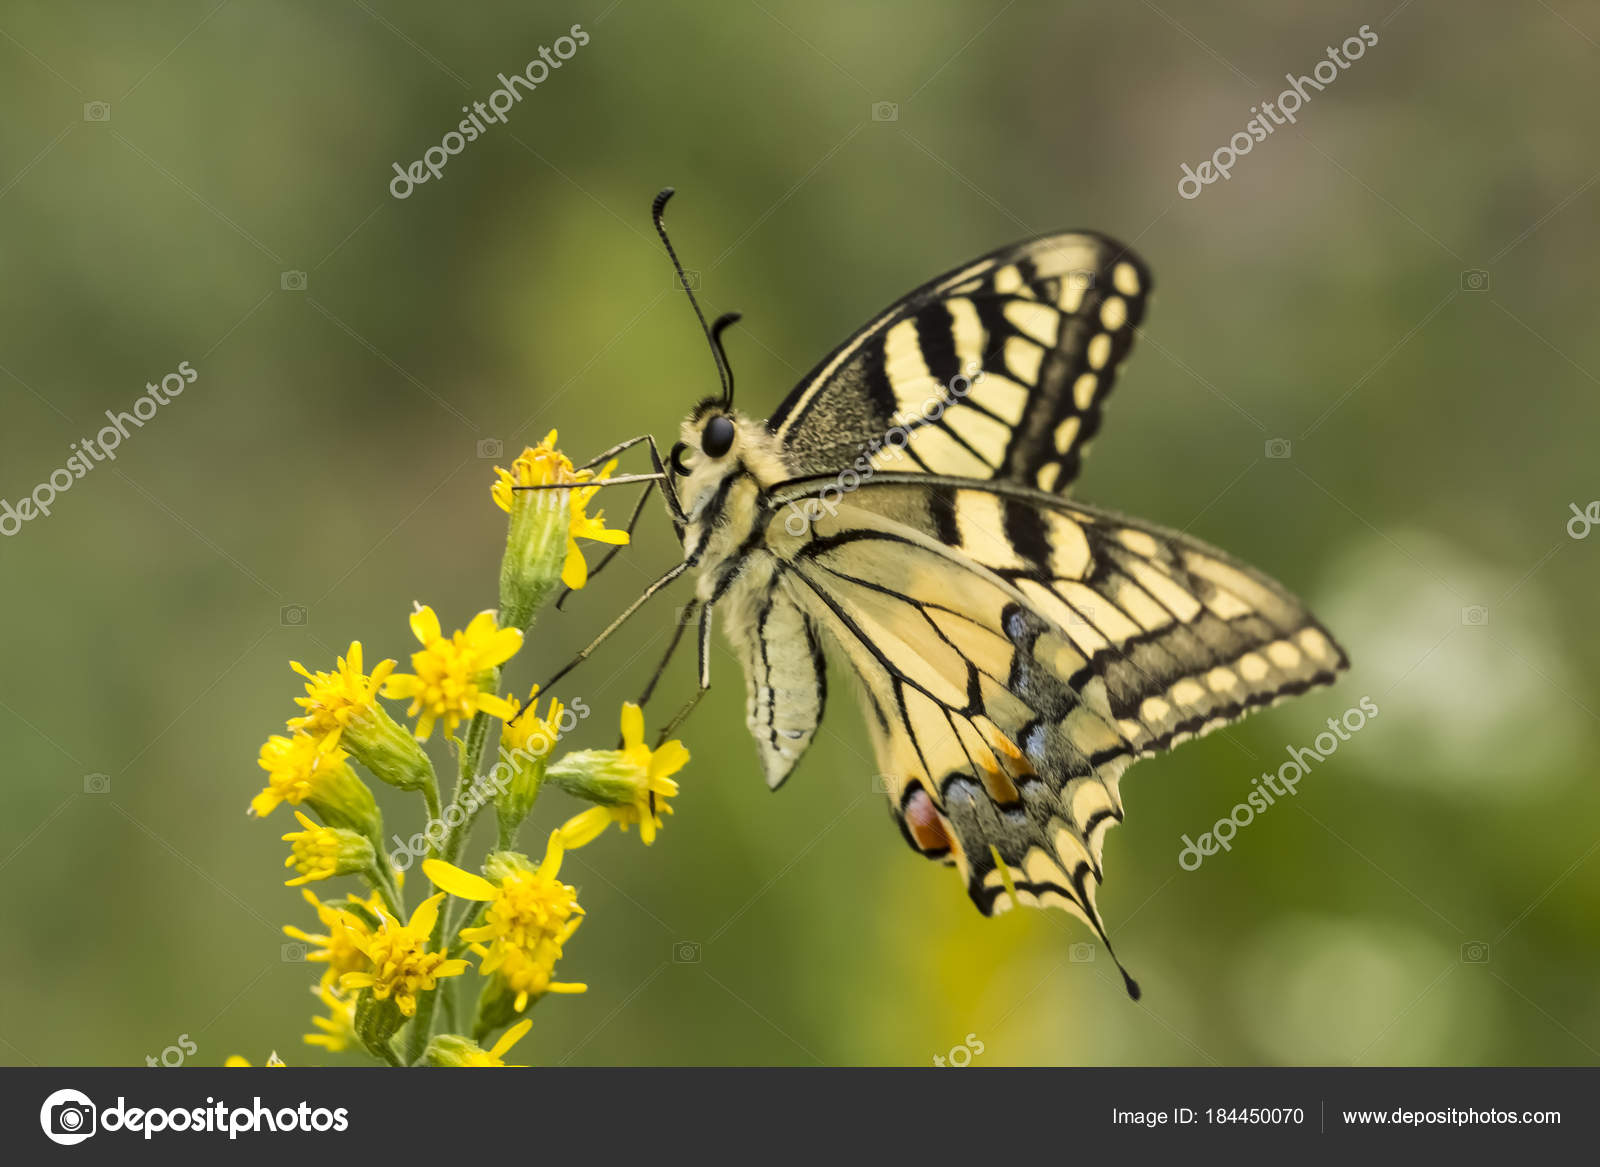 Sưu tập Bộ cánh vẩy 2 - Page 65 Depositphotos_184450070-stock-photo-papilio-machaon-swallowtail-butterfly-lower